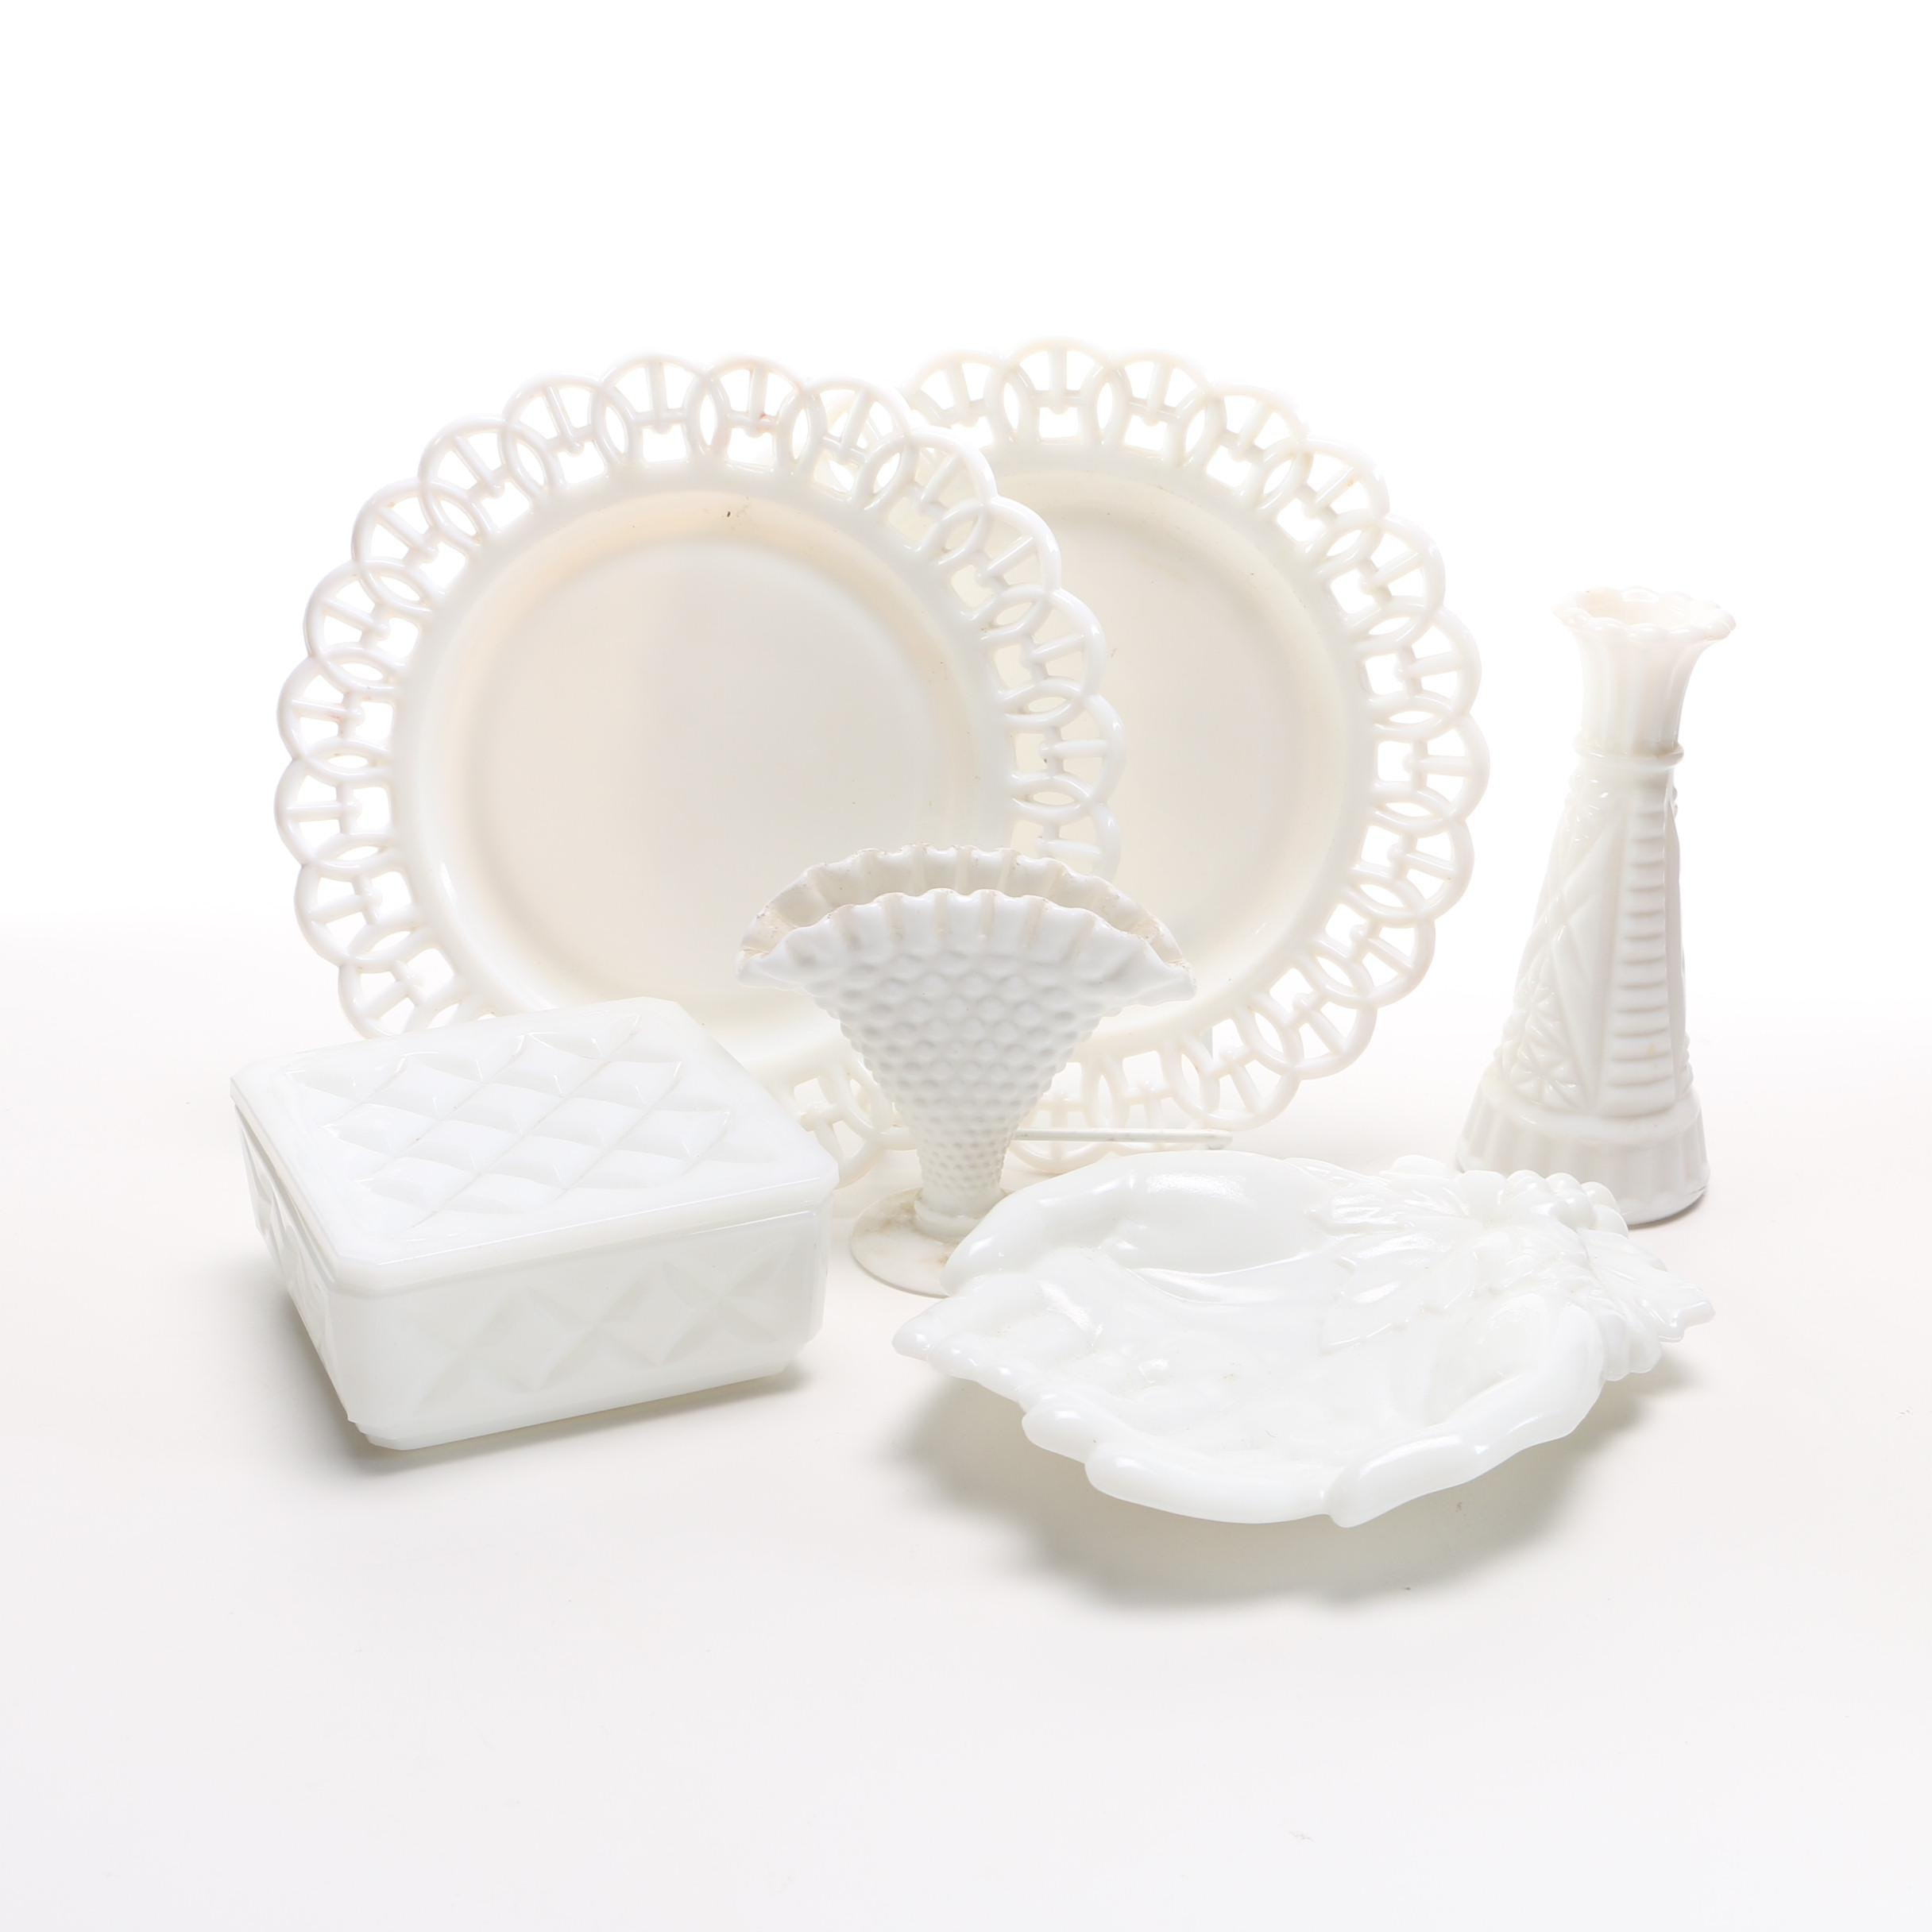 Collection of Antique and Vintage Decorative Milk Glass